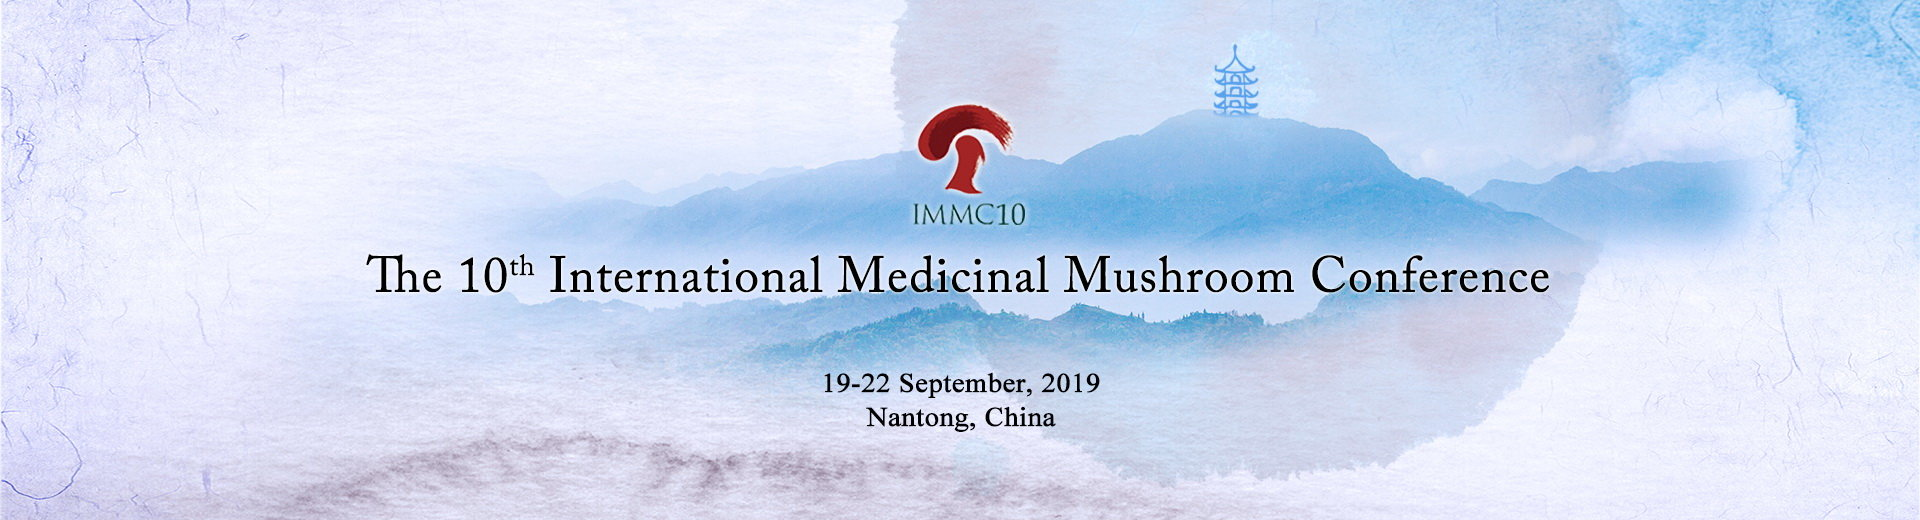 The 10th International Medicinal Mushroom Conference